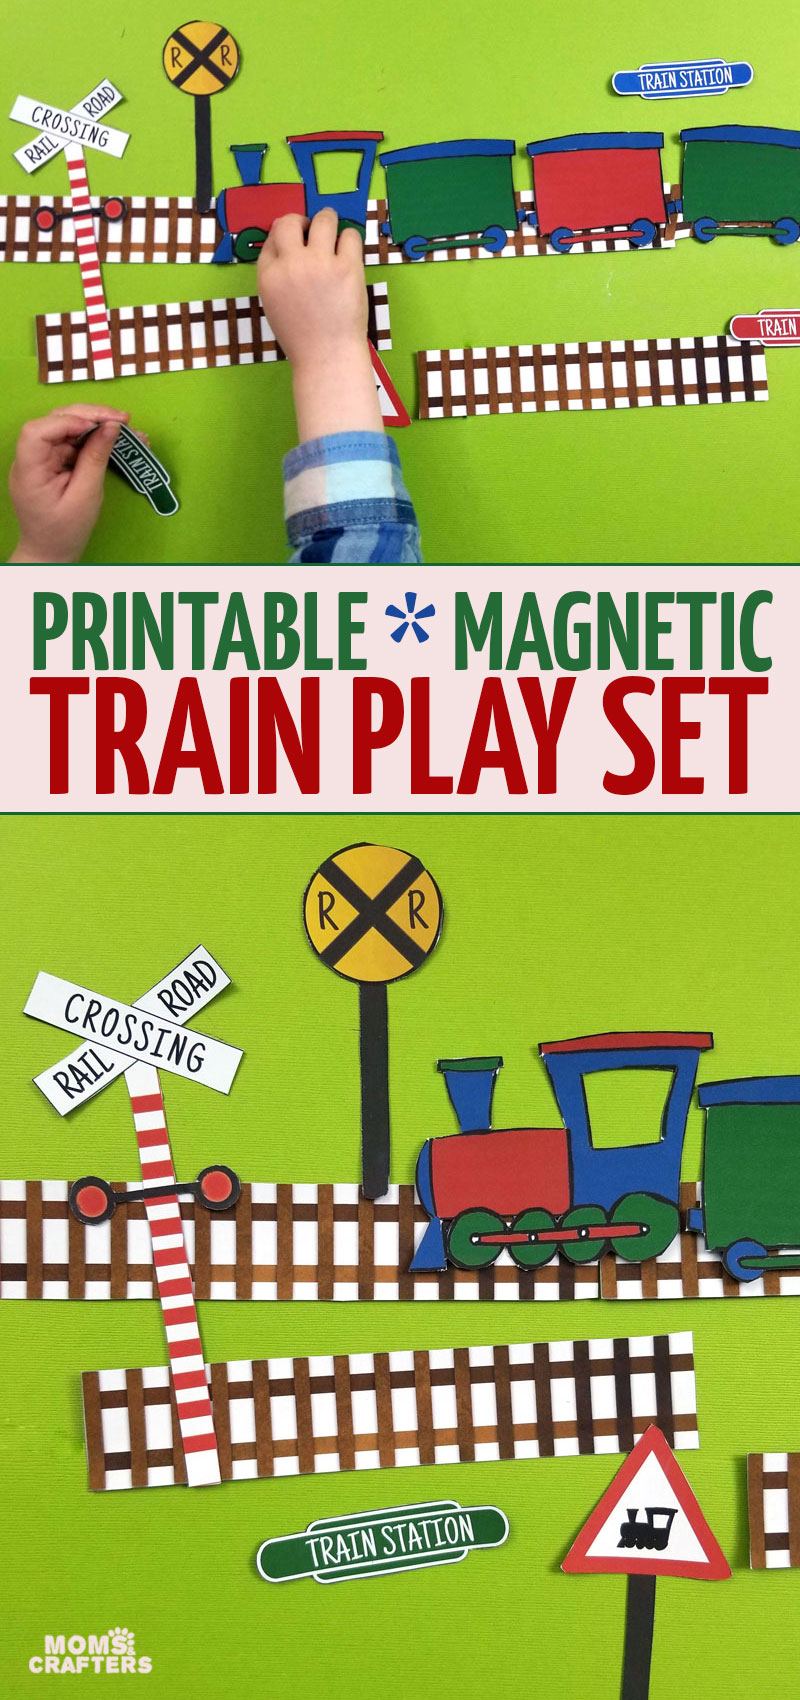 Click for some really cool train printables and magnetic travel activities for preschoolers, toddlers, and more!